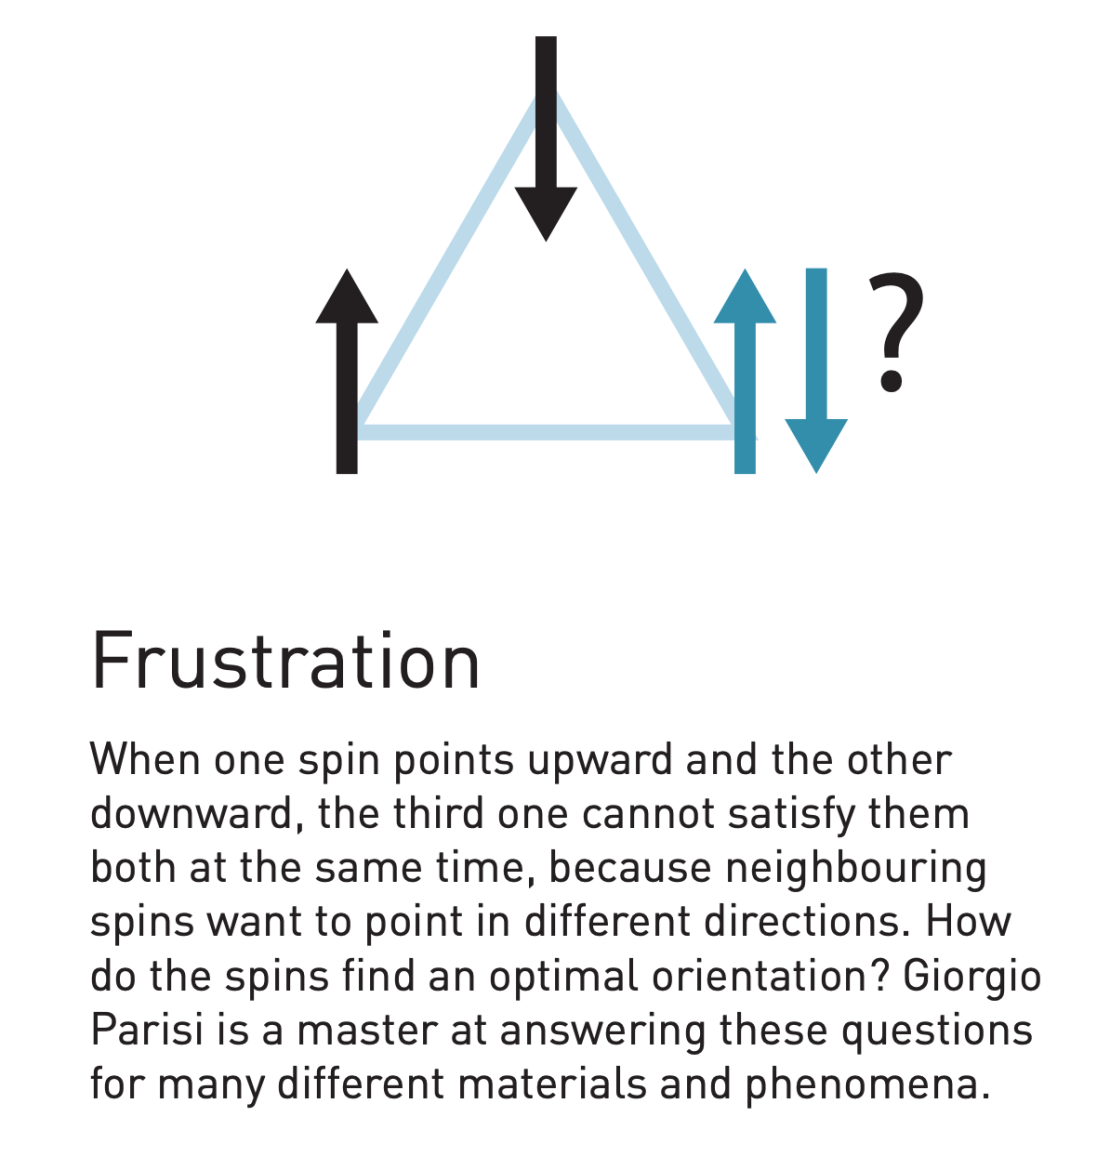 A diagram demonstrating the concept of frustration in complex systems.